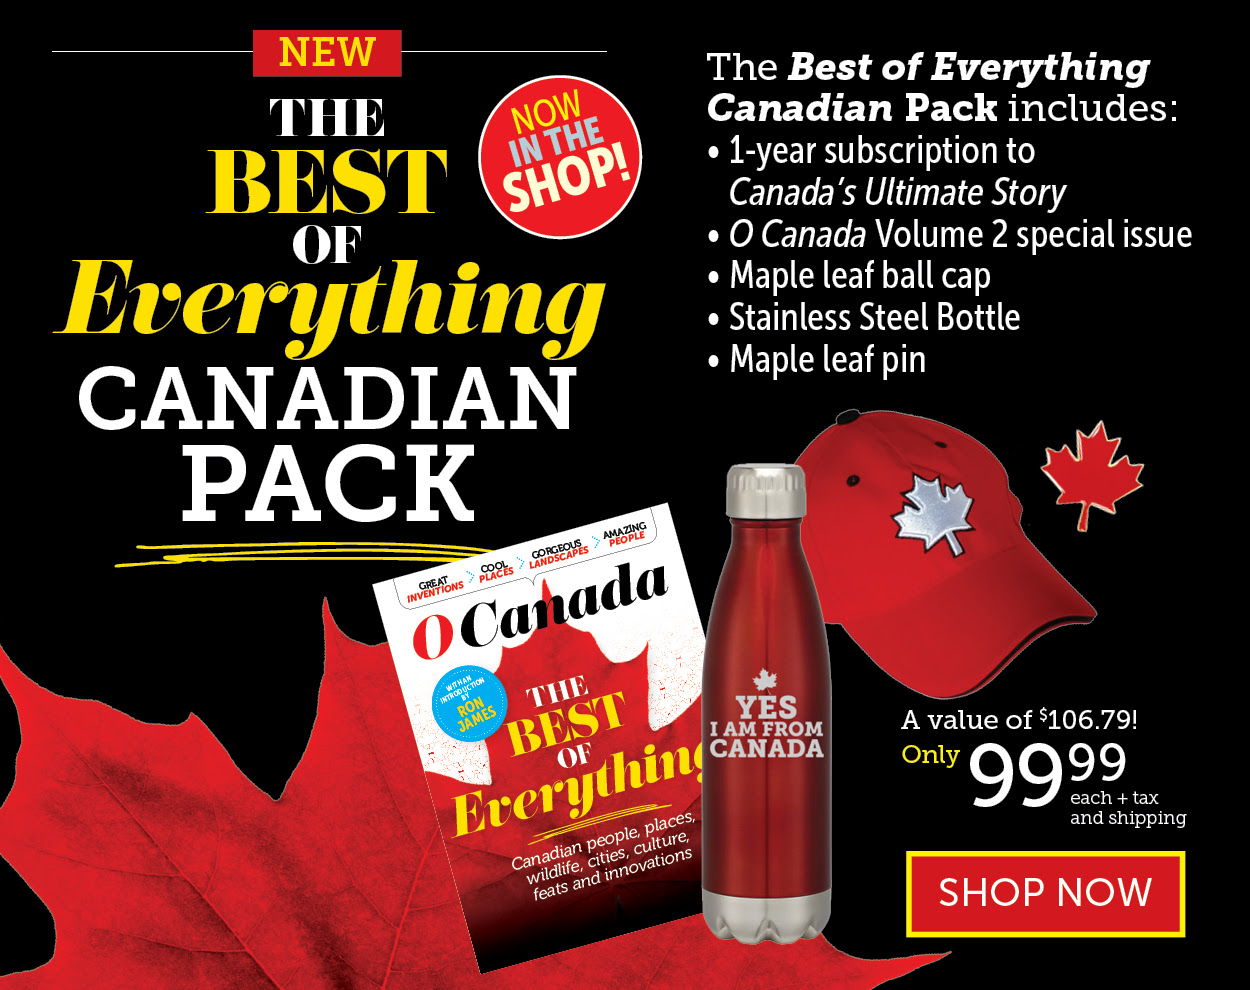 The Best of Everything Canadian Pack!